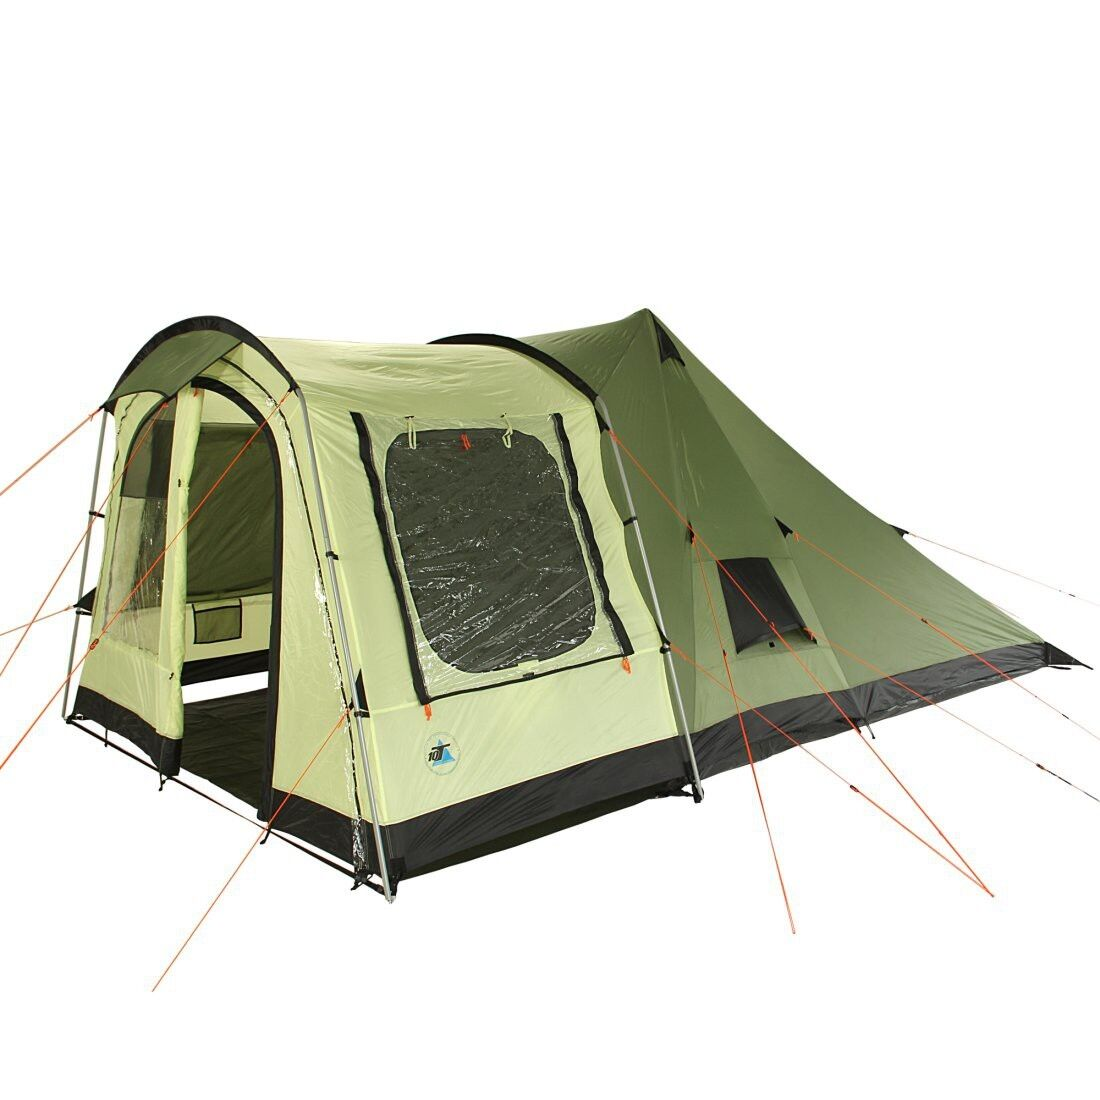 10T Tropico 4 - Tenda indiana Tipi 4 posti, grande camera da letto, 5.000 mm di